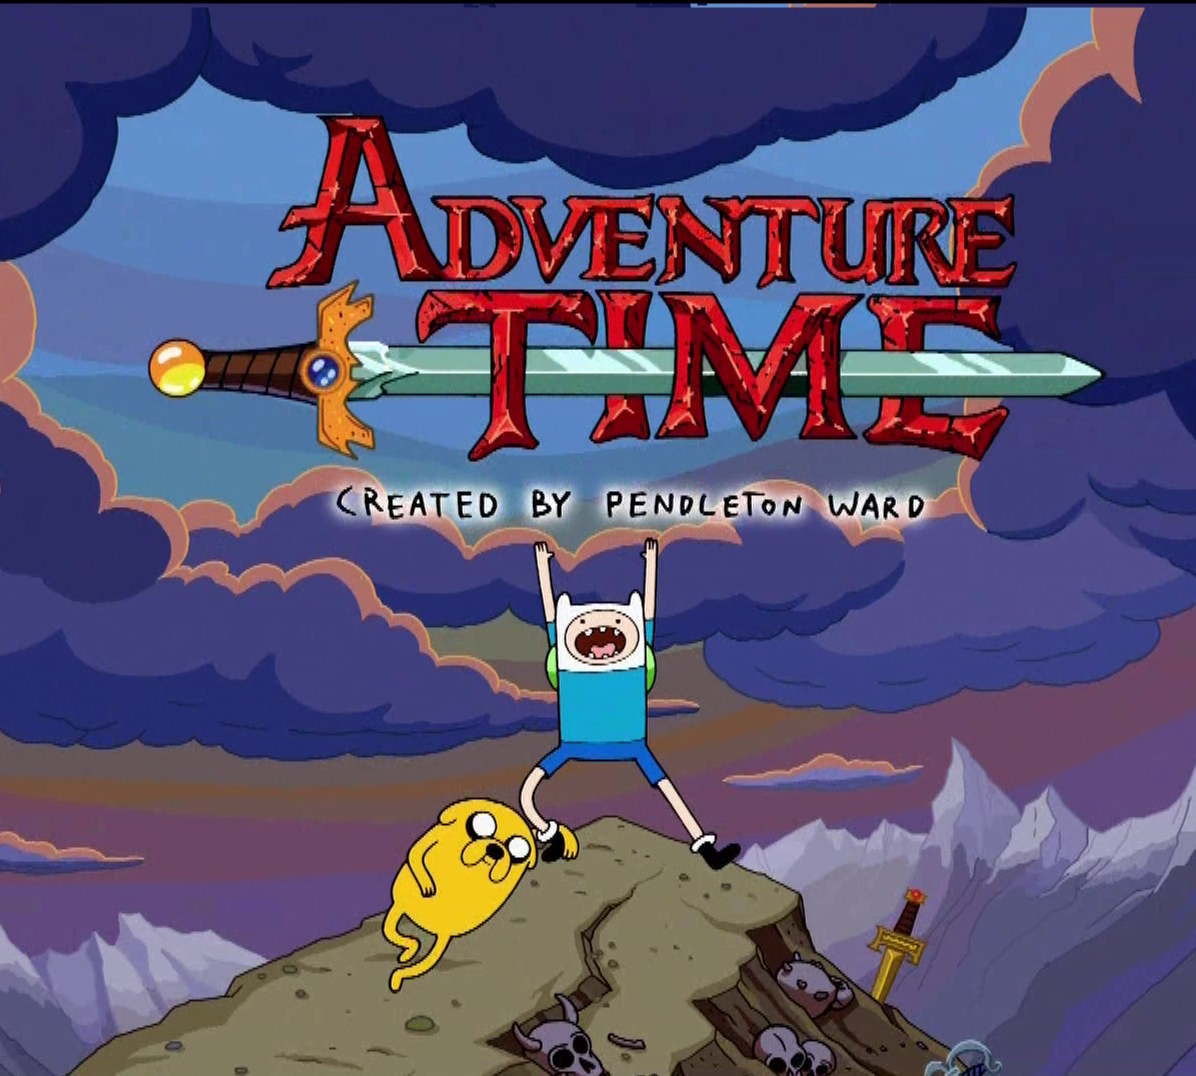 Adventure Time With Finn Jake1 Png 1196 1076 Adventure Time Theme Song Adventure Time Cartoon Adventure Time